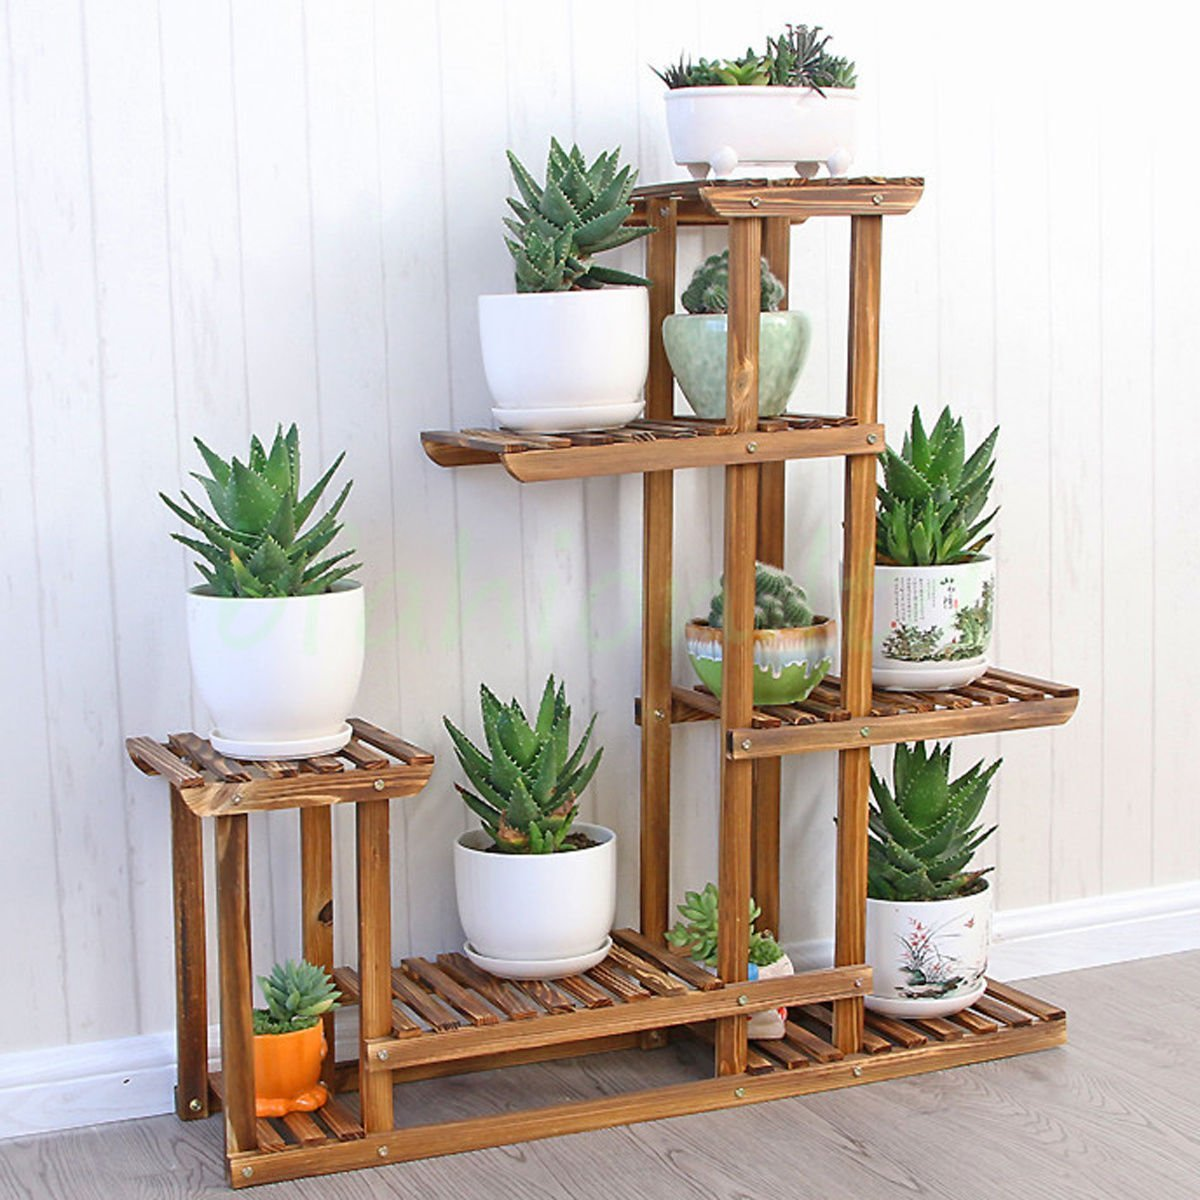 5 Tier Wood Shelf Plant Stand Bathroom Rack Garden Planter Pot Holder For Indoor And Outdoor